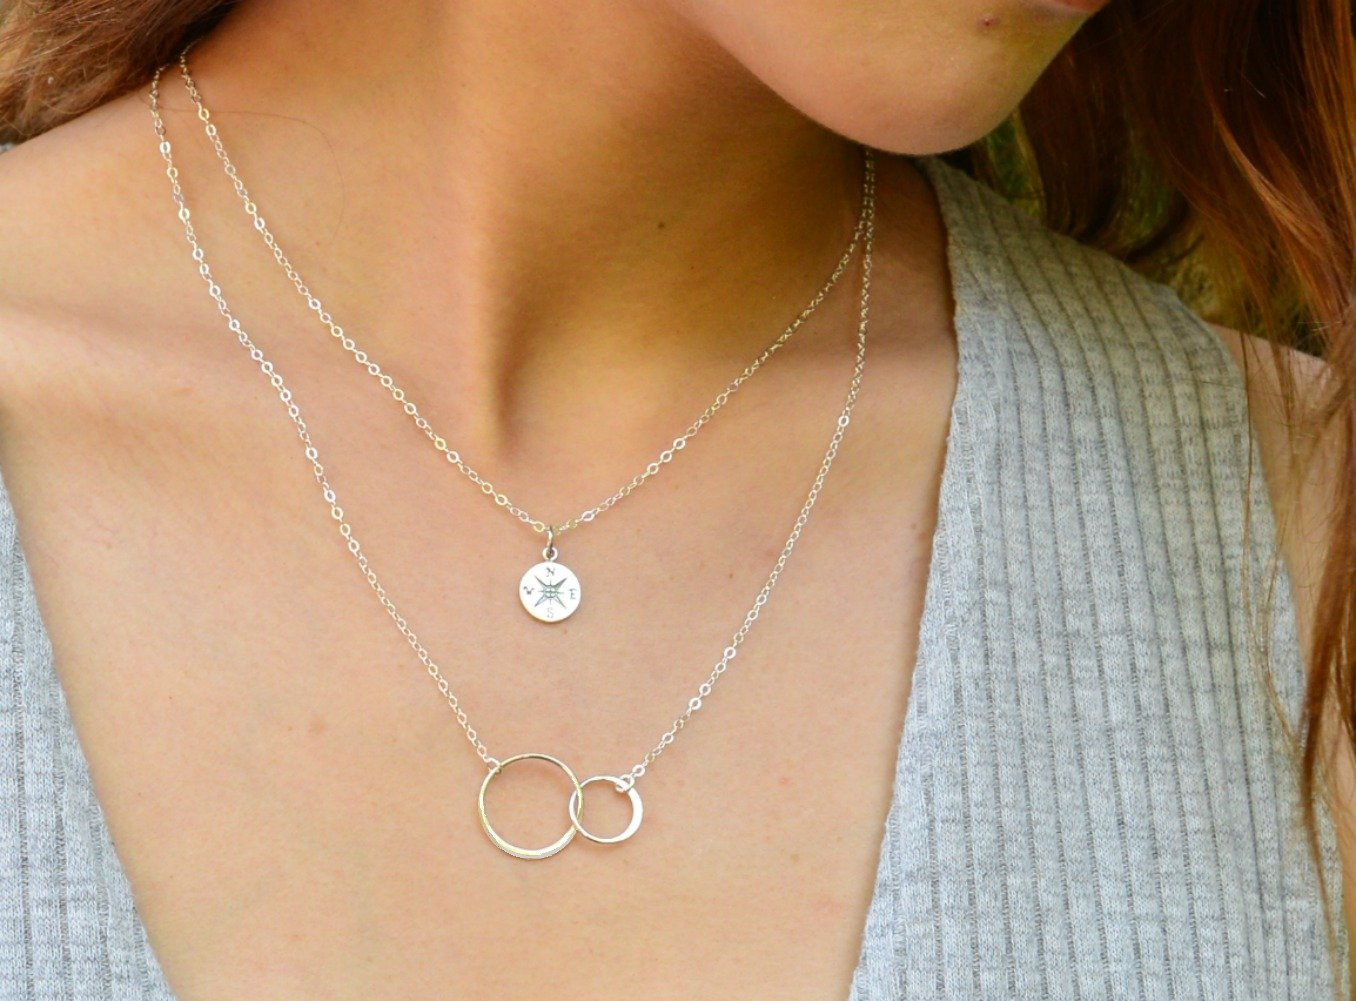 Necklace Gift for Girlfriend/Wife, Sterling Silver Cute I Love You Compass Heart Jewelry for Her, Valentines Day by Efy Tal Jewelry (Image #3)